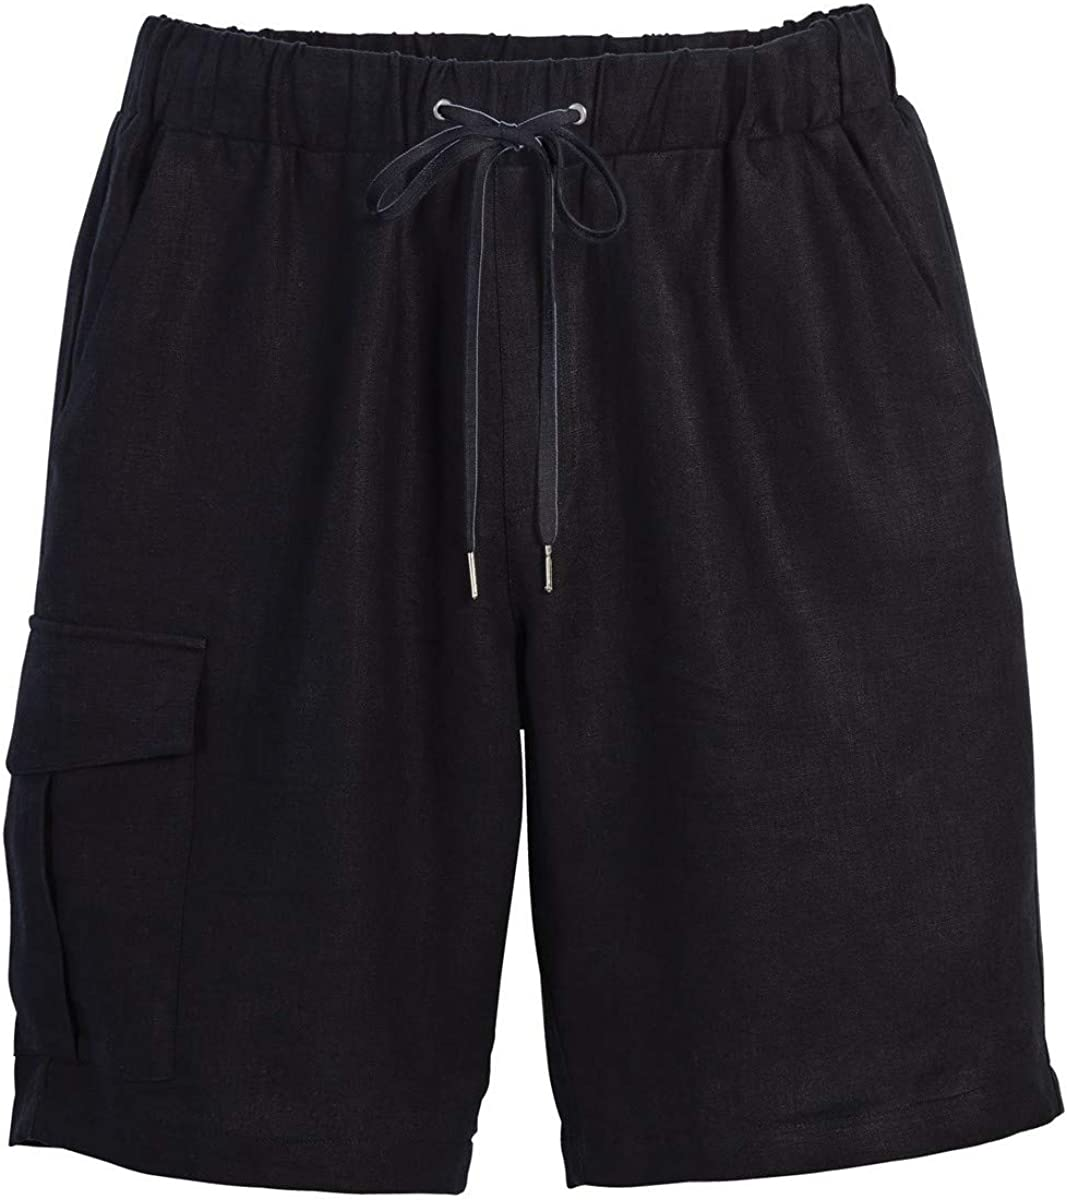 Beachcombers Mens Linen Cargo Shorts With an Elastic Waistband Black Large